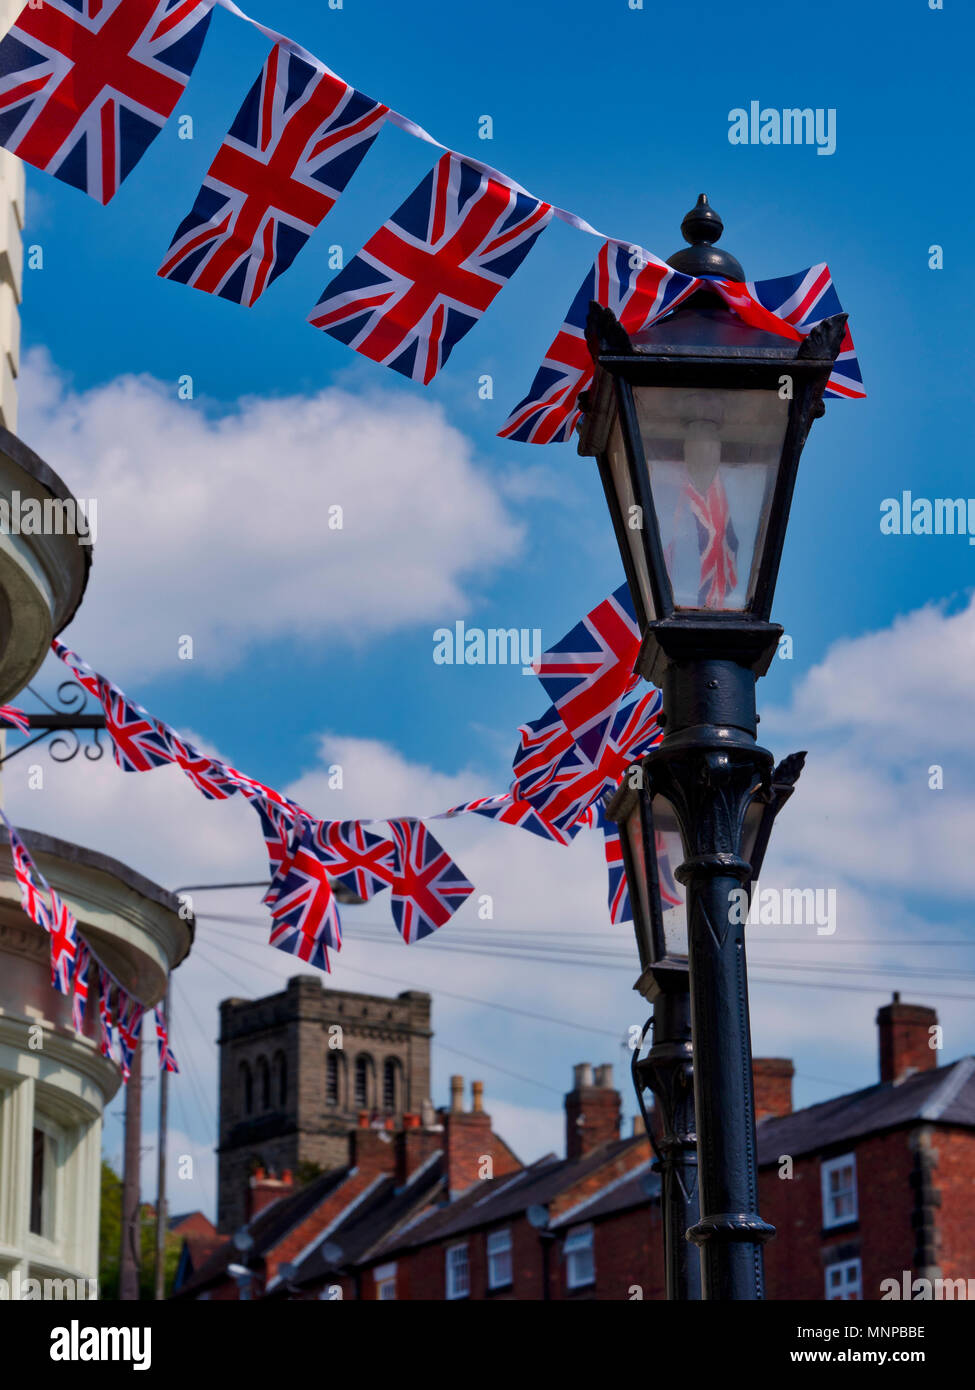 Ashbourne, Derbyshire, UK, 19 May 2018. A typical scene in an English town with Royal Union Jack Flags flying on the day of the Royal wedding in Ashbourne, Derbyshire the gateway to the Peak District National Park Credit: Doug Blane/Alamy Live NewsStock Photo